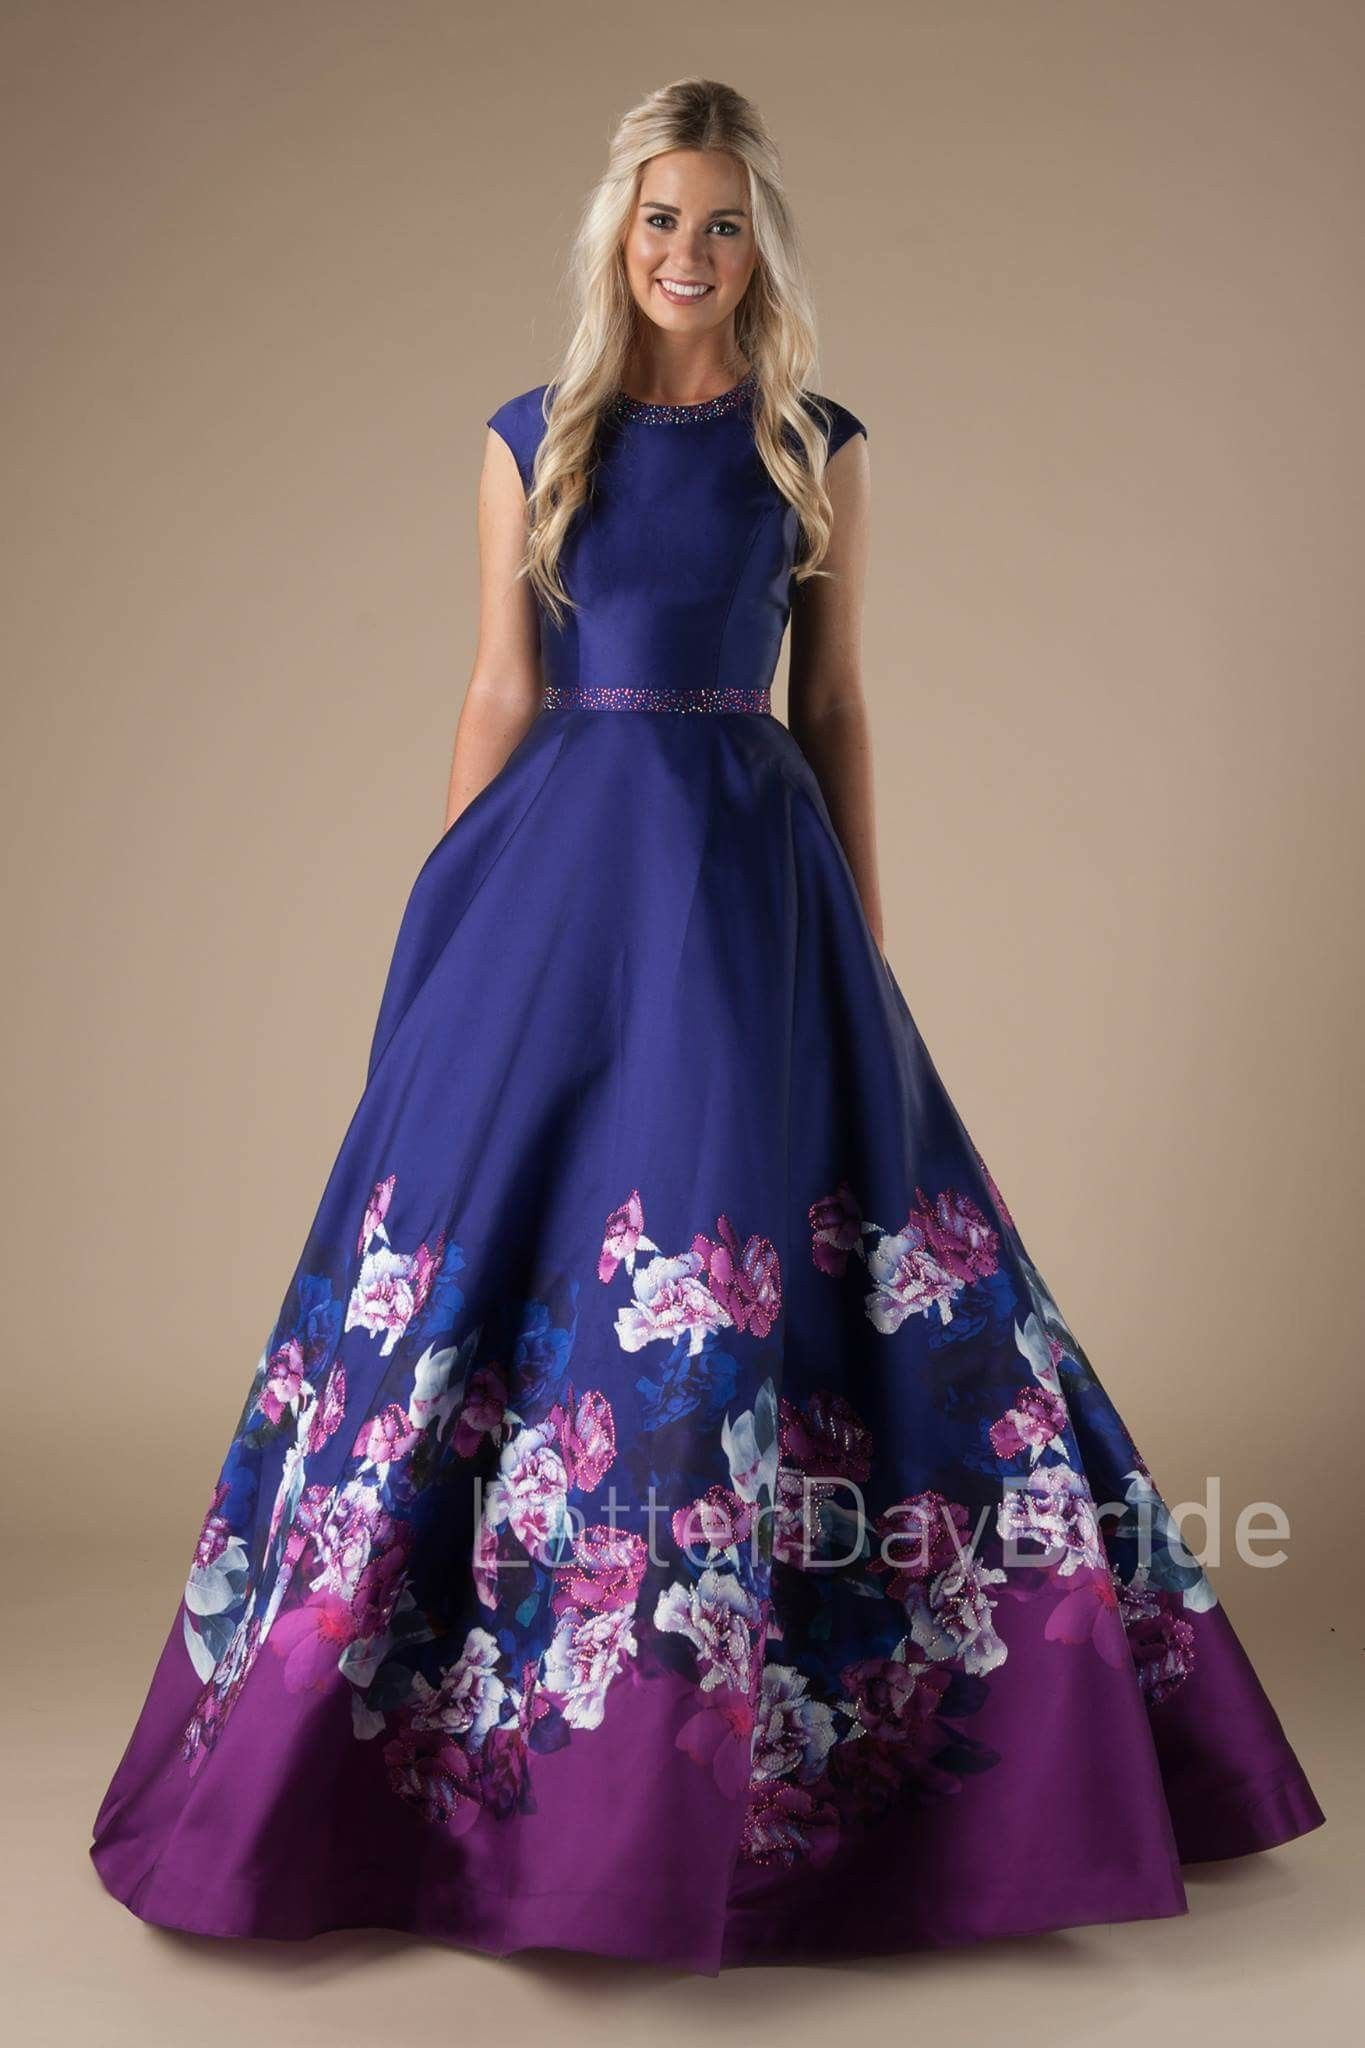 Beautiful dress! \